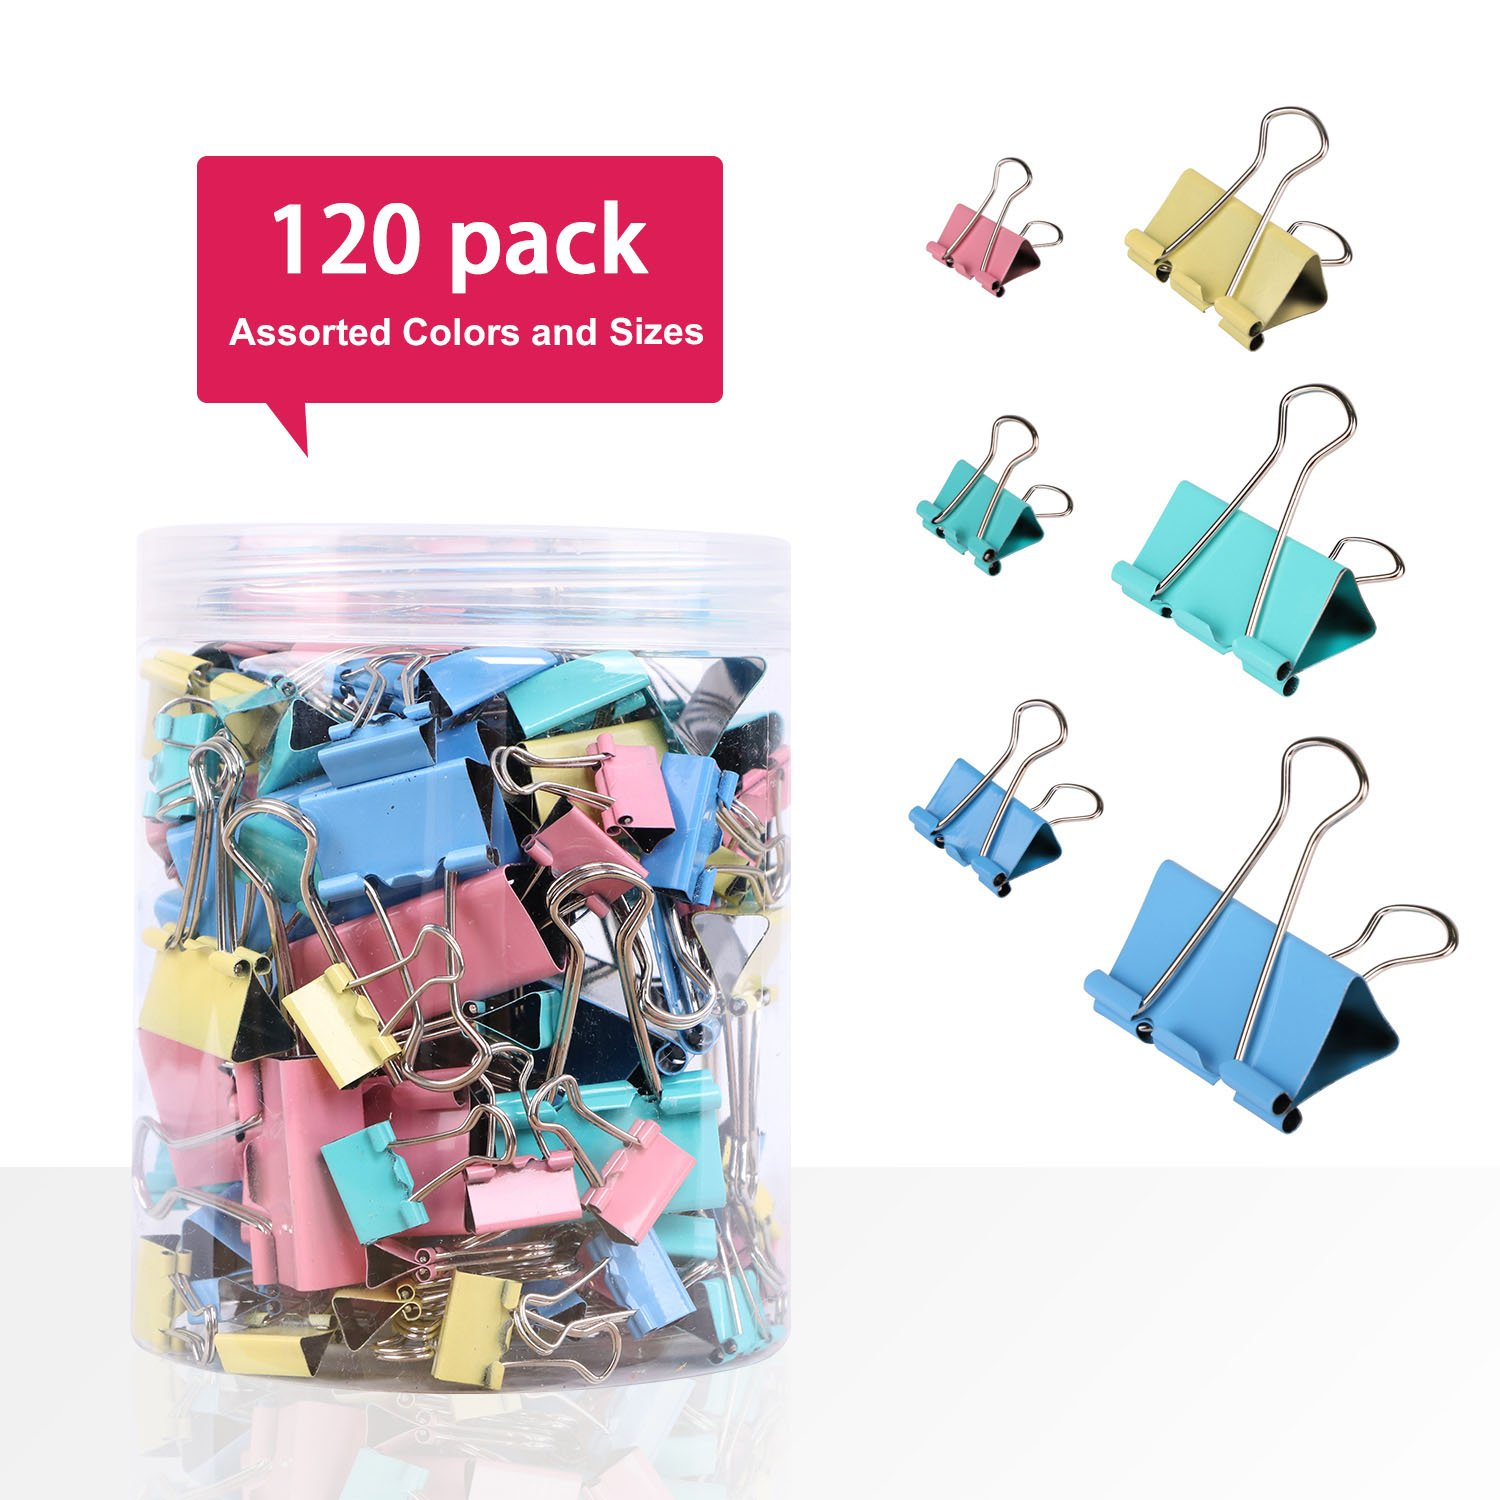 Multi-Colored Assorted Metal Binder Clips